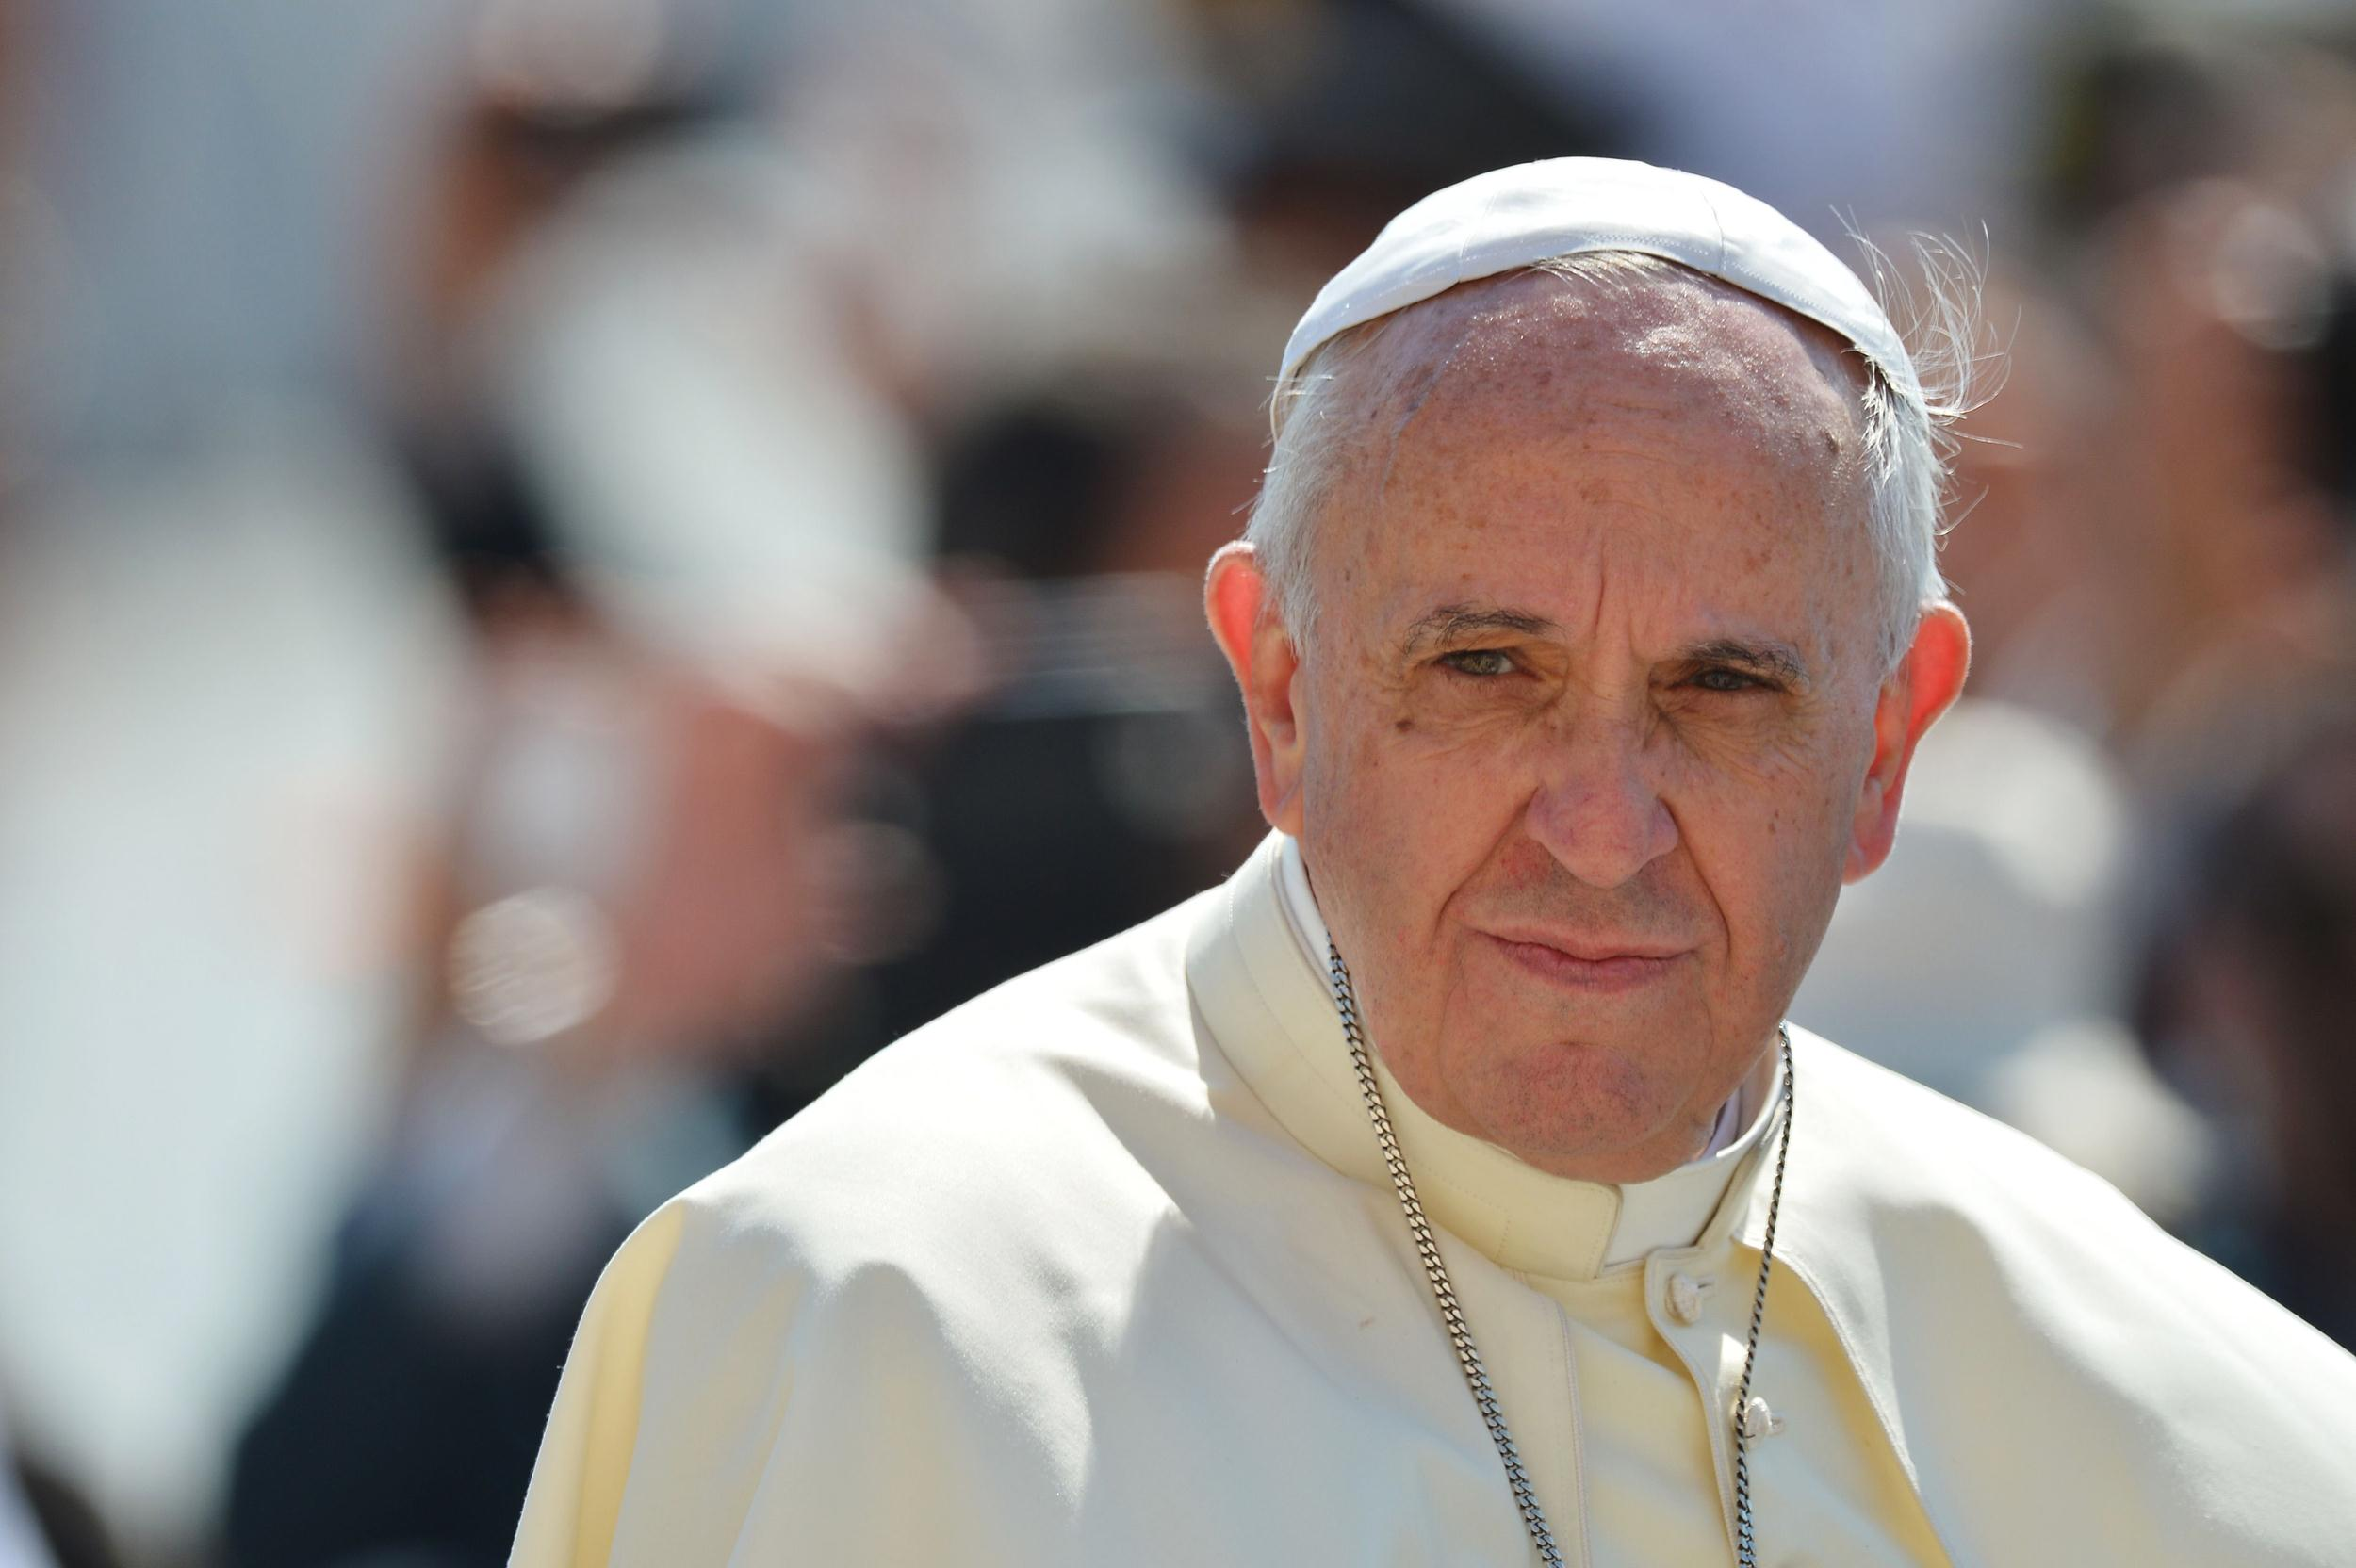 ICYMI: Pope Francis Dropped His 'Wake Up!' Album